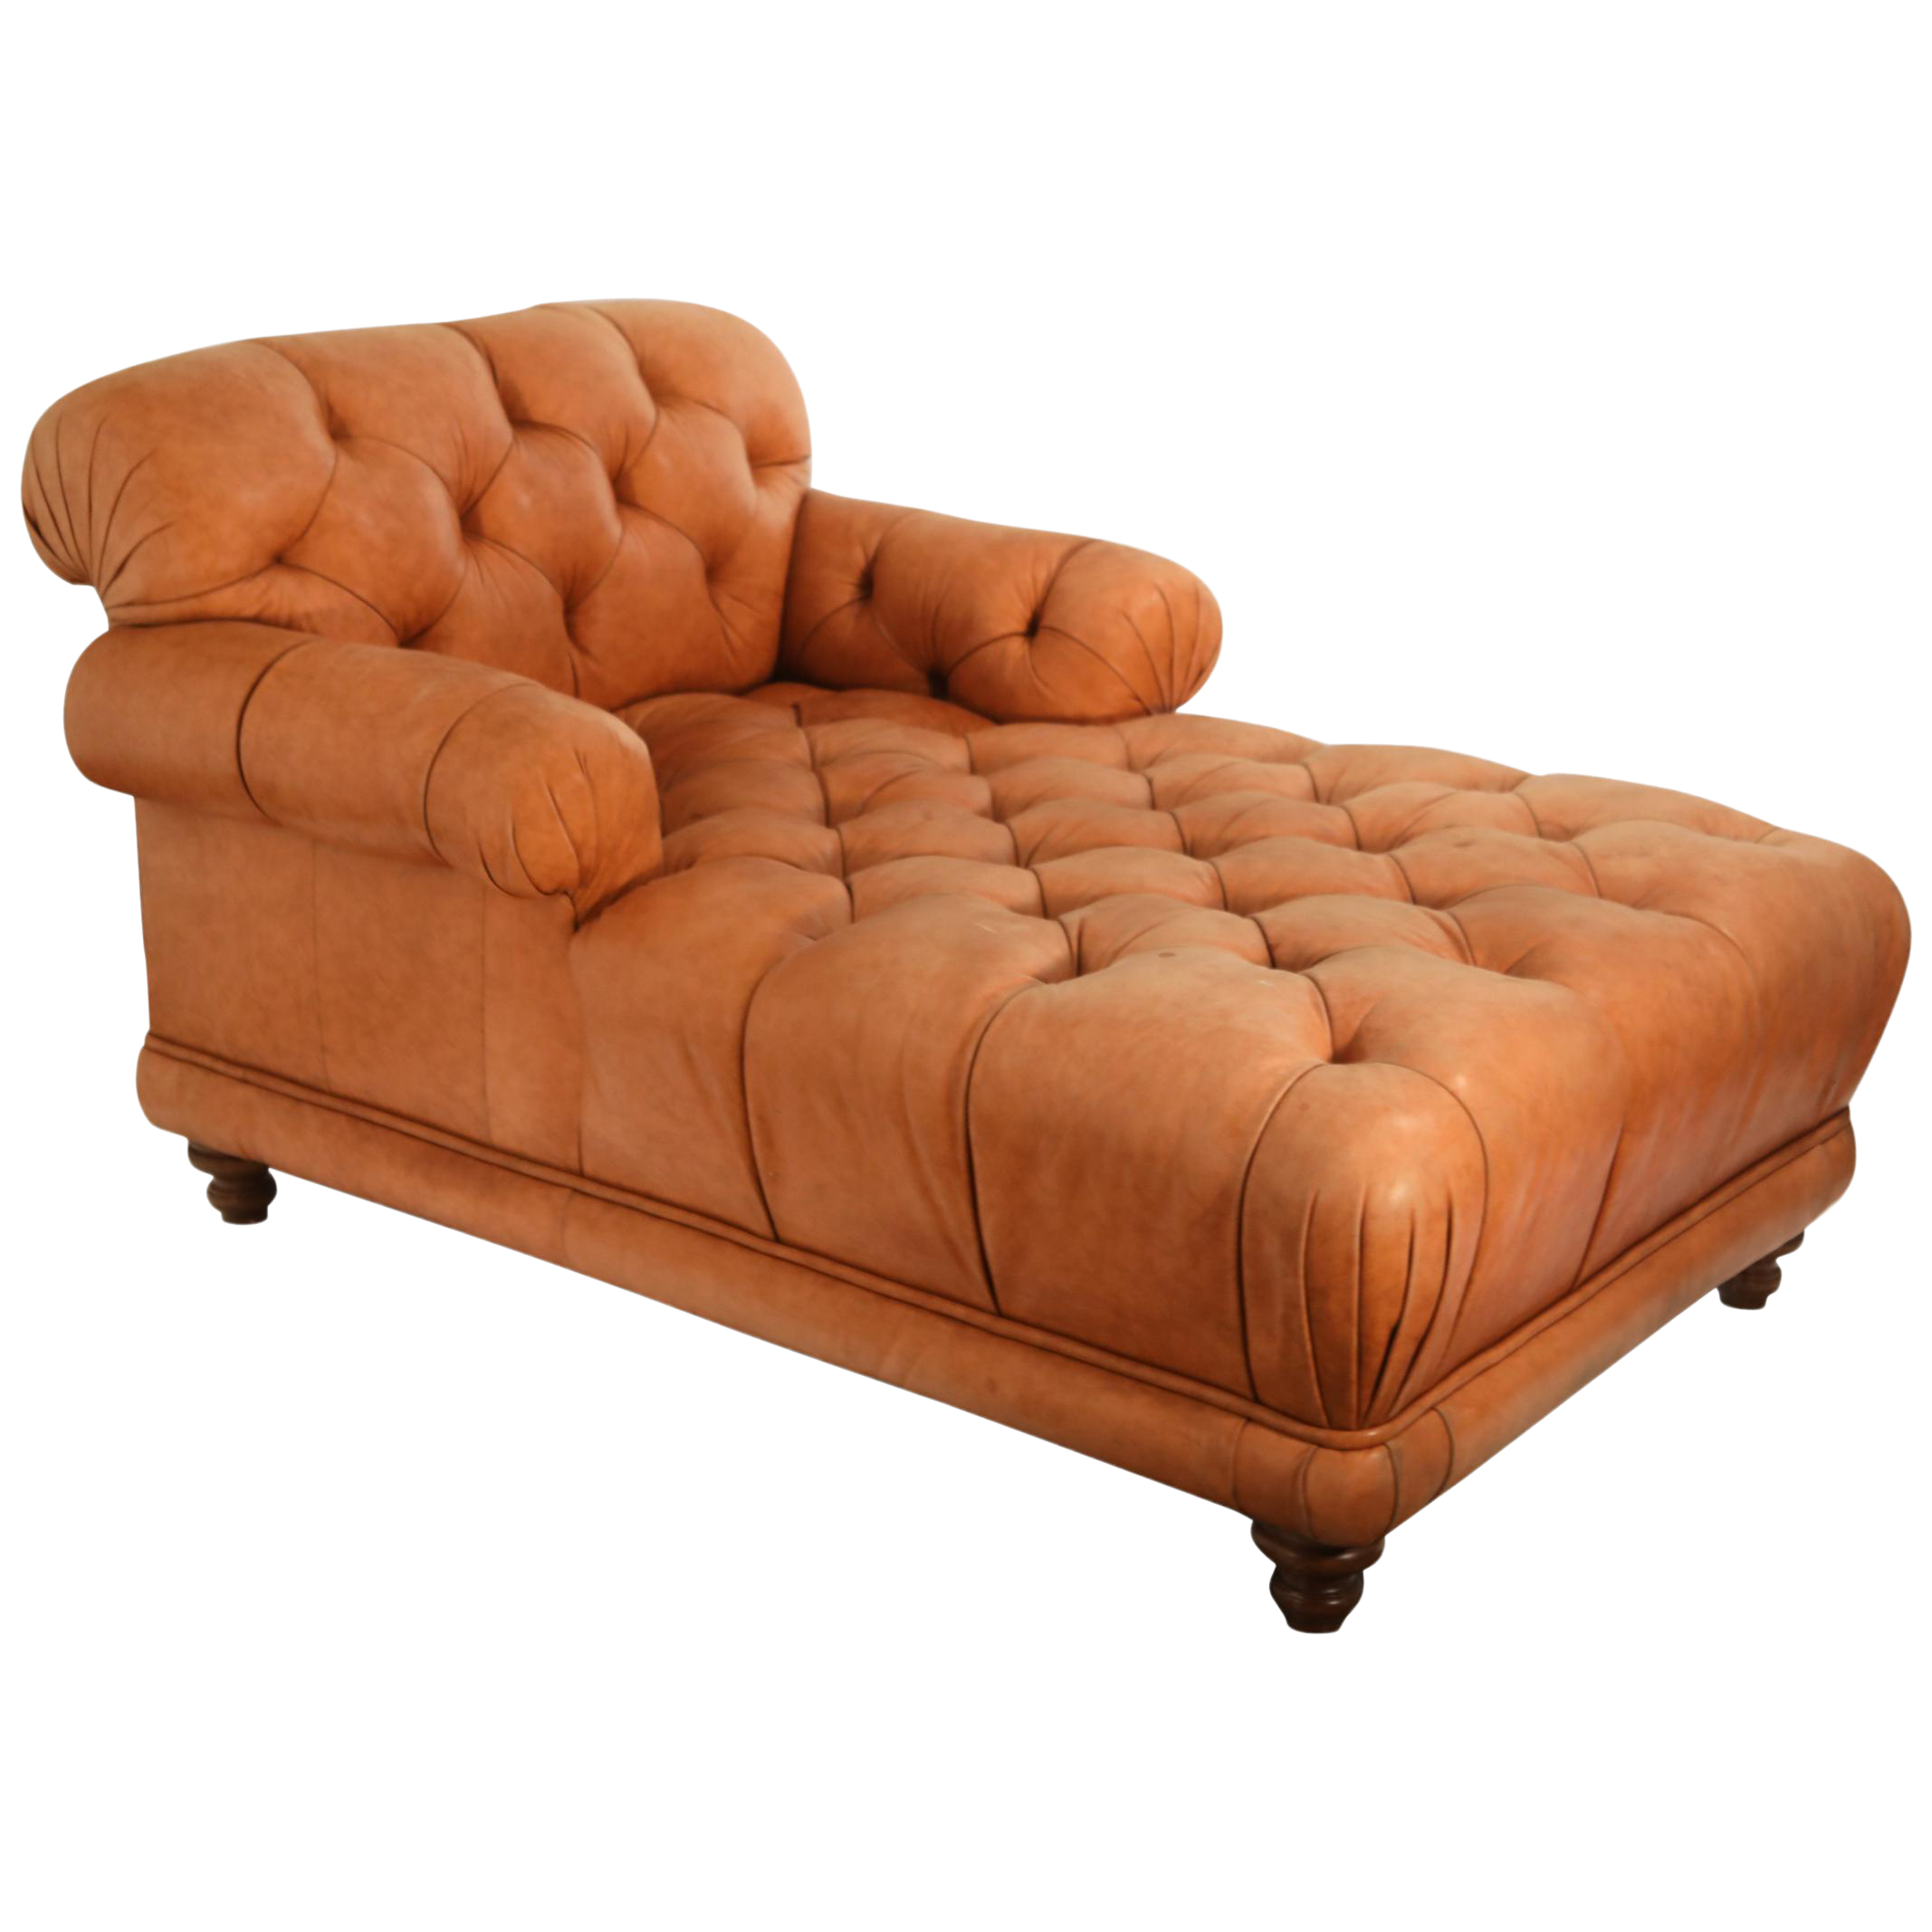 Tufted Distressed Leather Ralph Lauren Chesterfield Styled Chaise Lounge Daybed